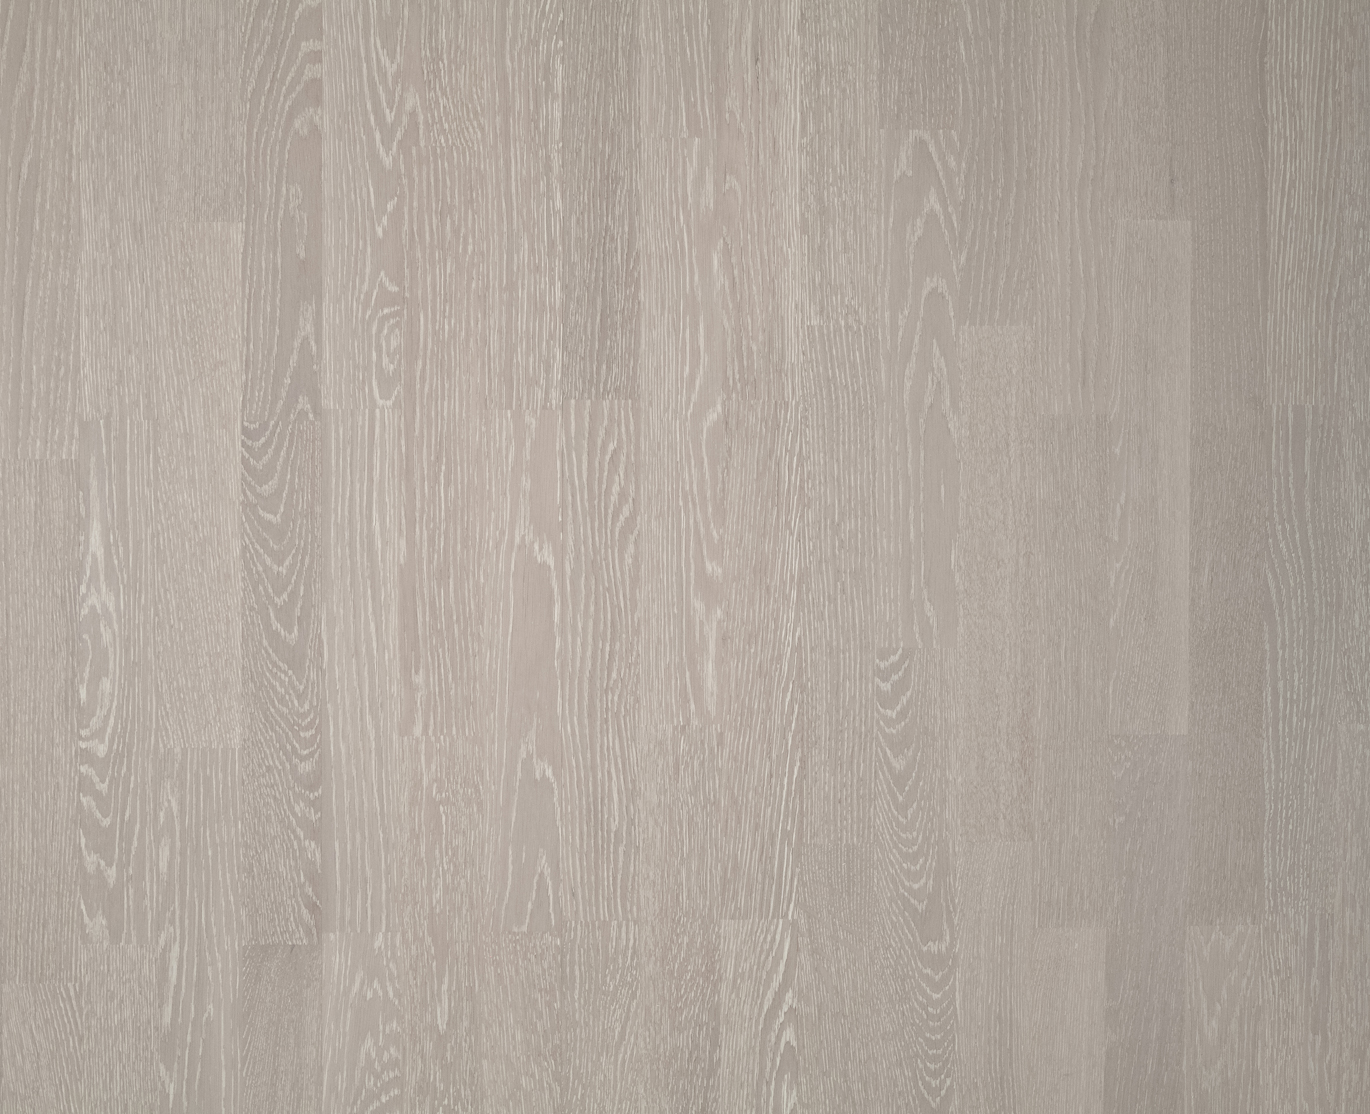 talc wood flooring fuse flooring With talc parquet